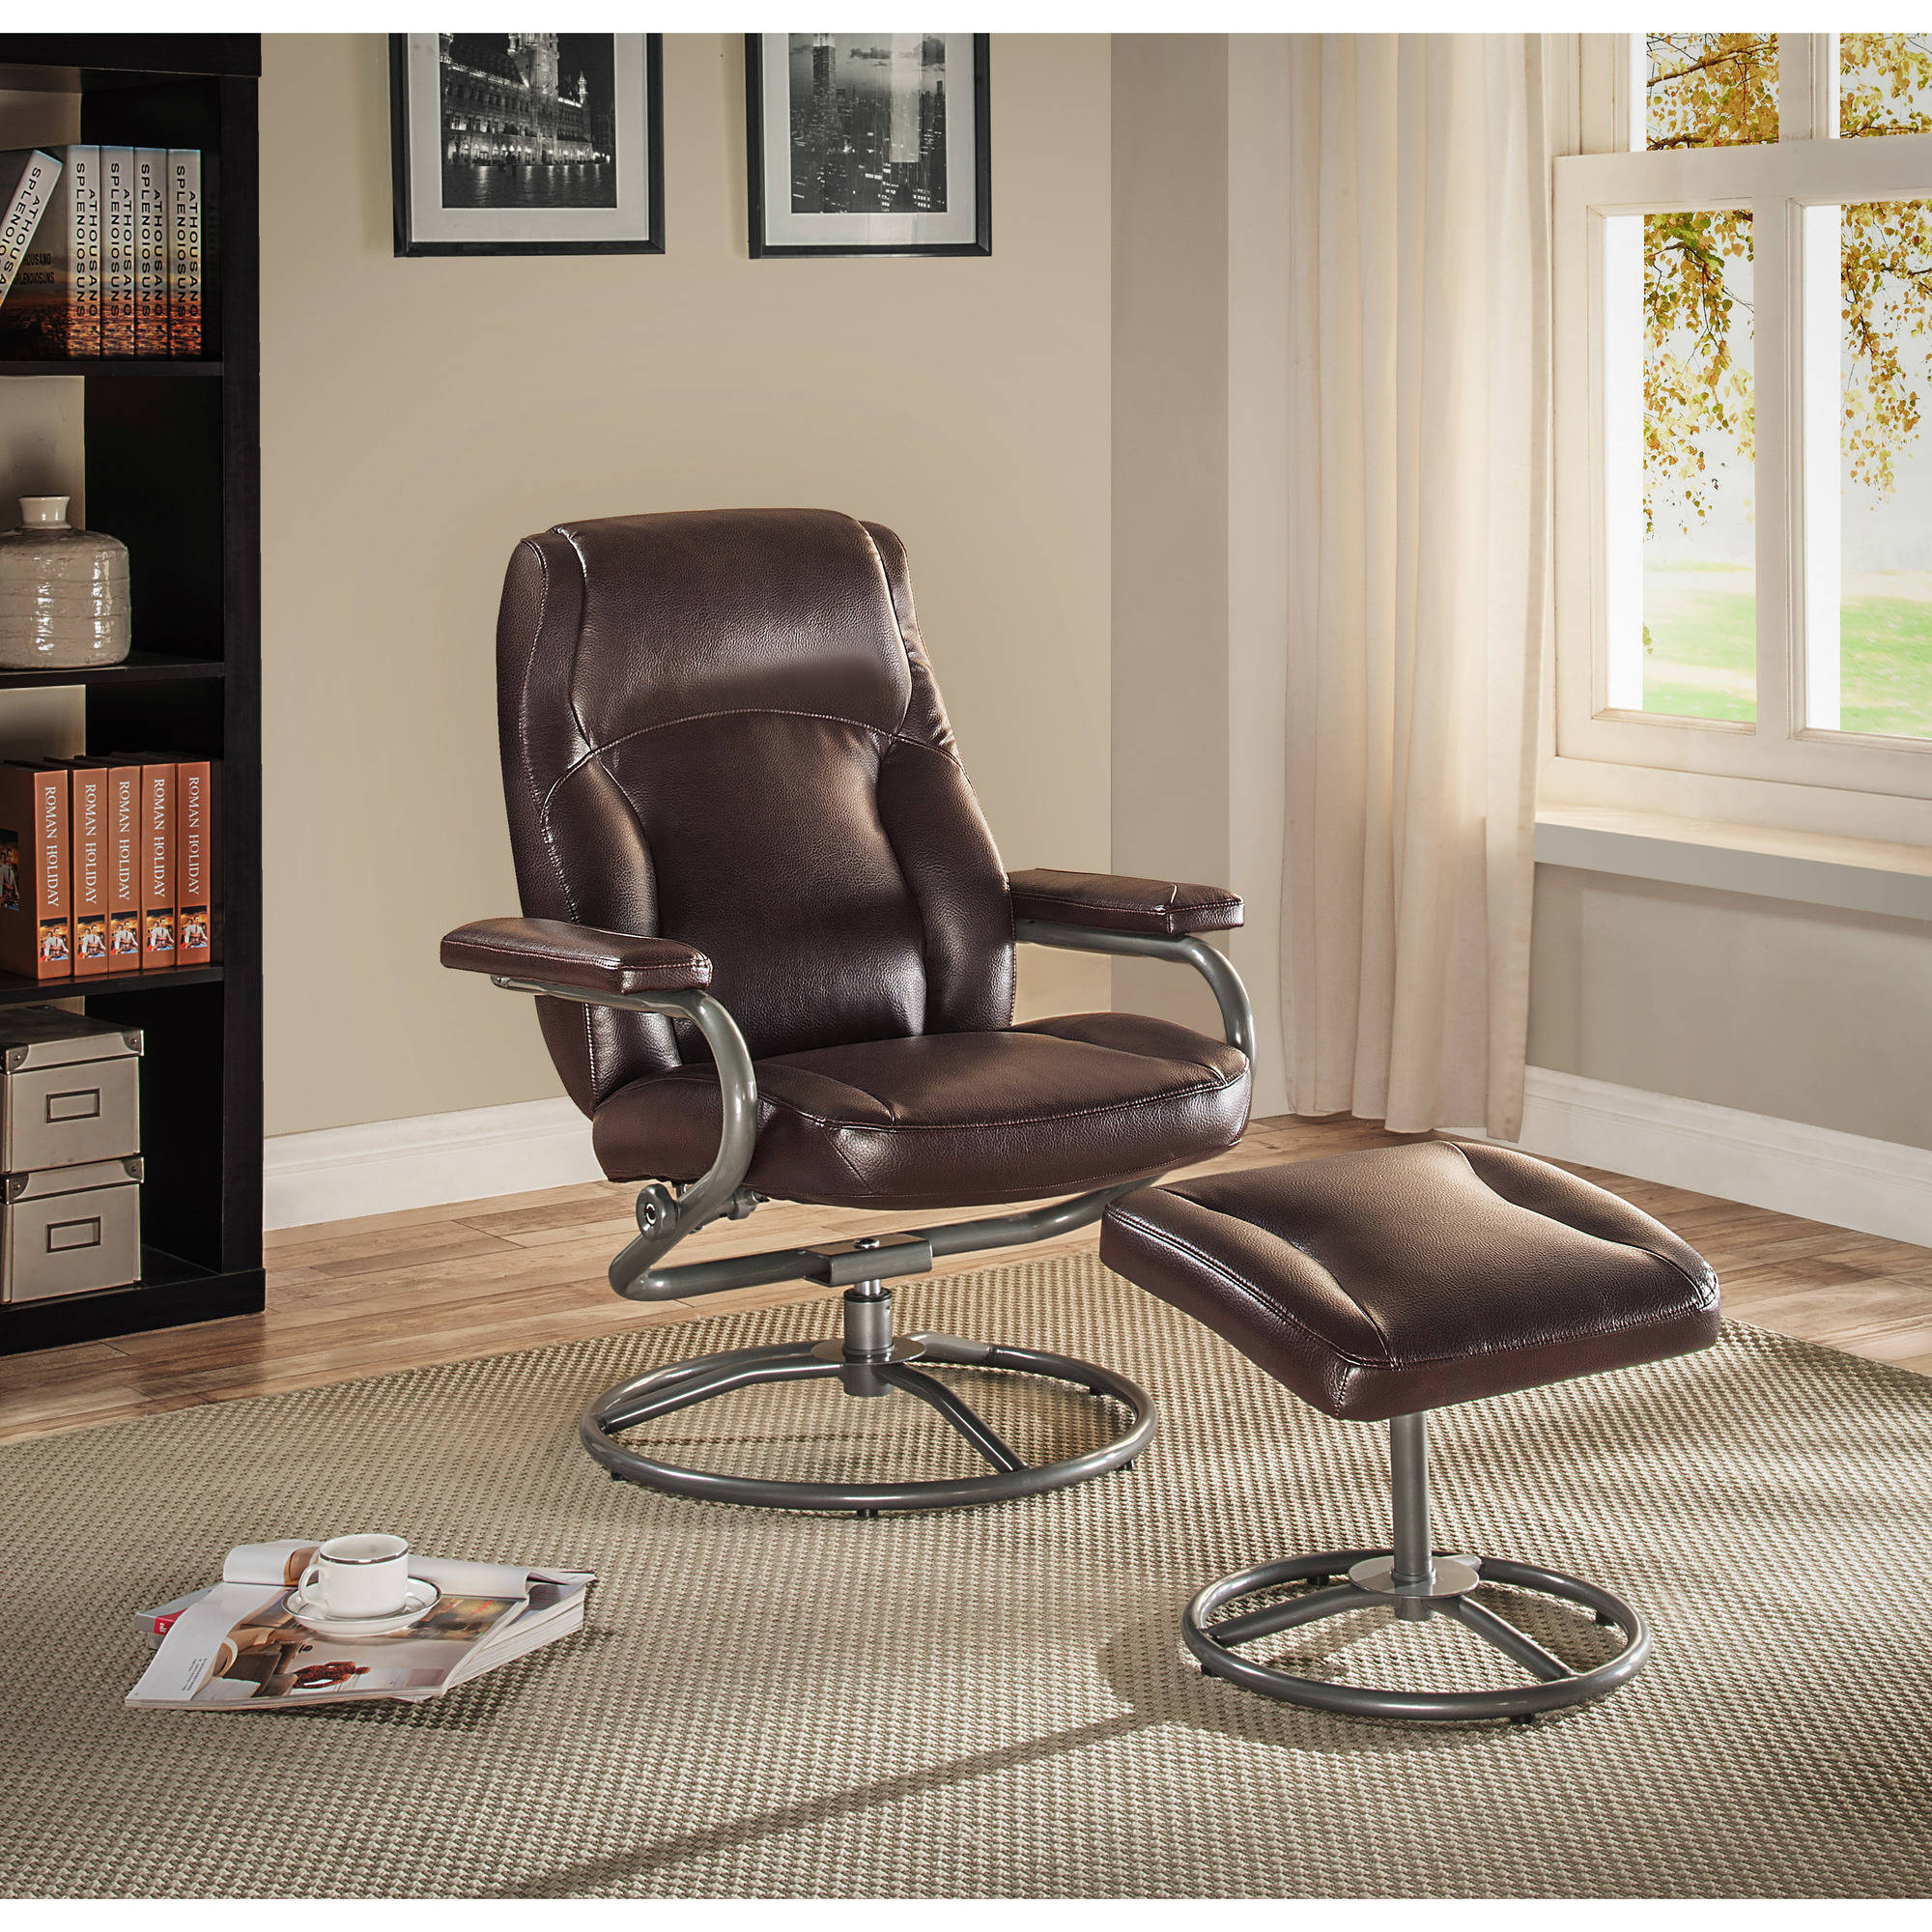 Recliner Chair Ottoman Set Living Room Swivel Office Furniture Seat Brown Vinyl